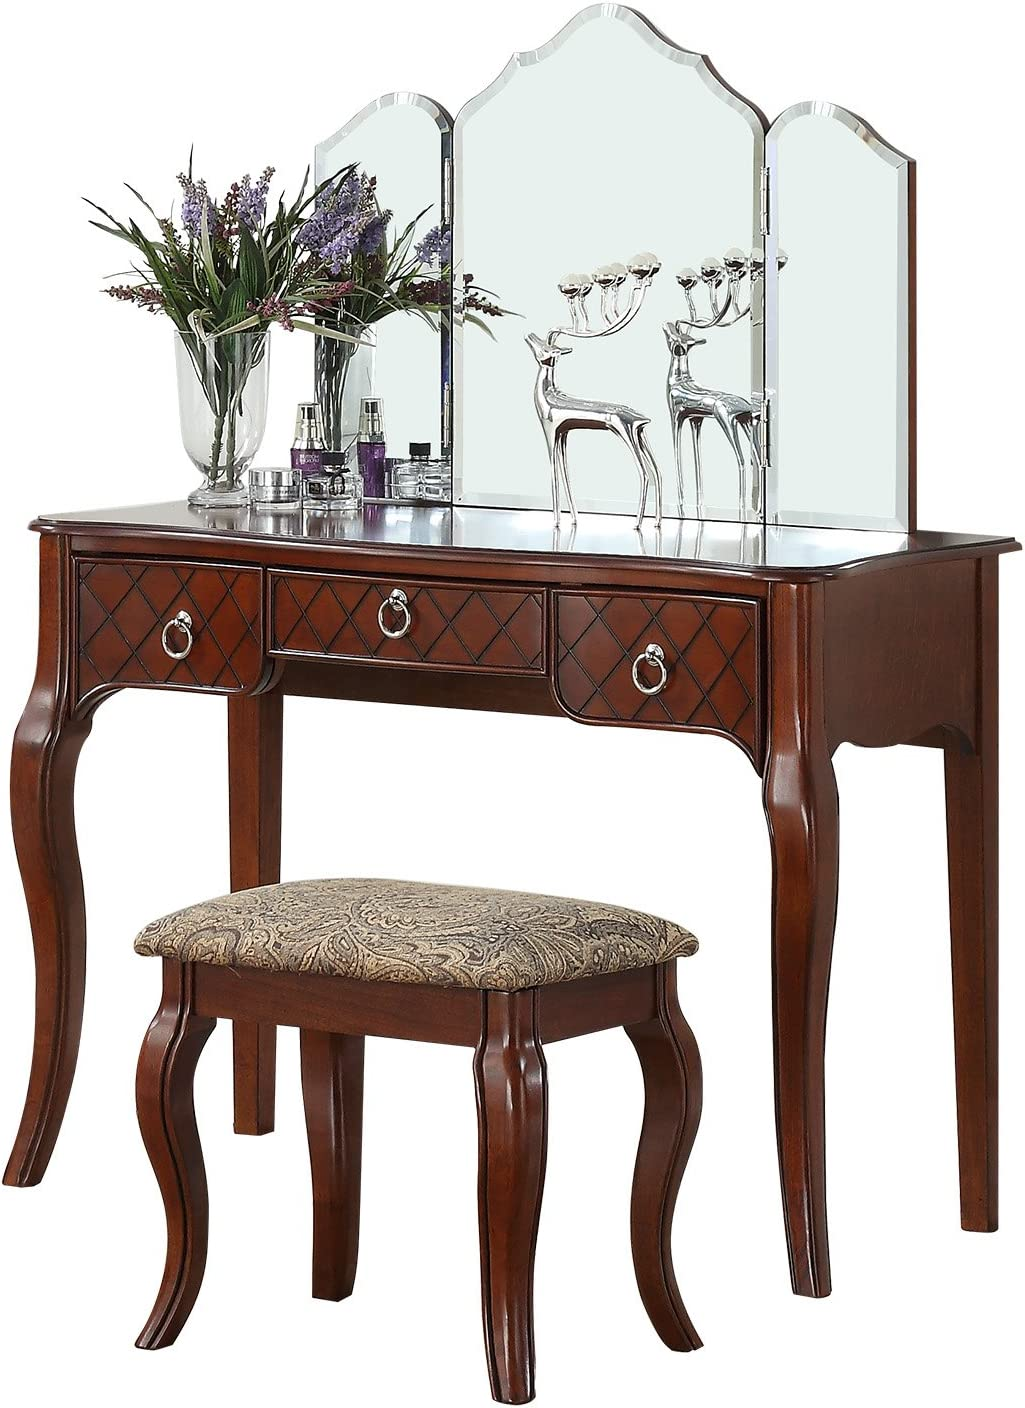 BOBKONA PDEX- Vanity Table With Stool Set, Cherry